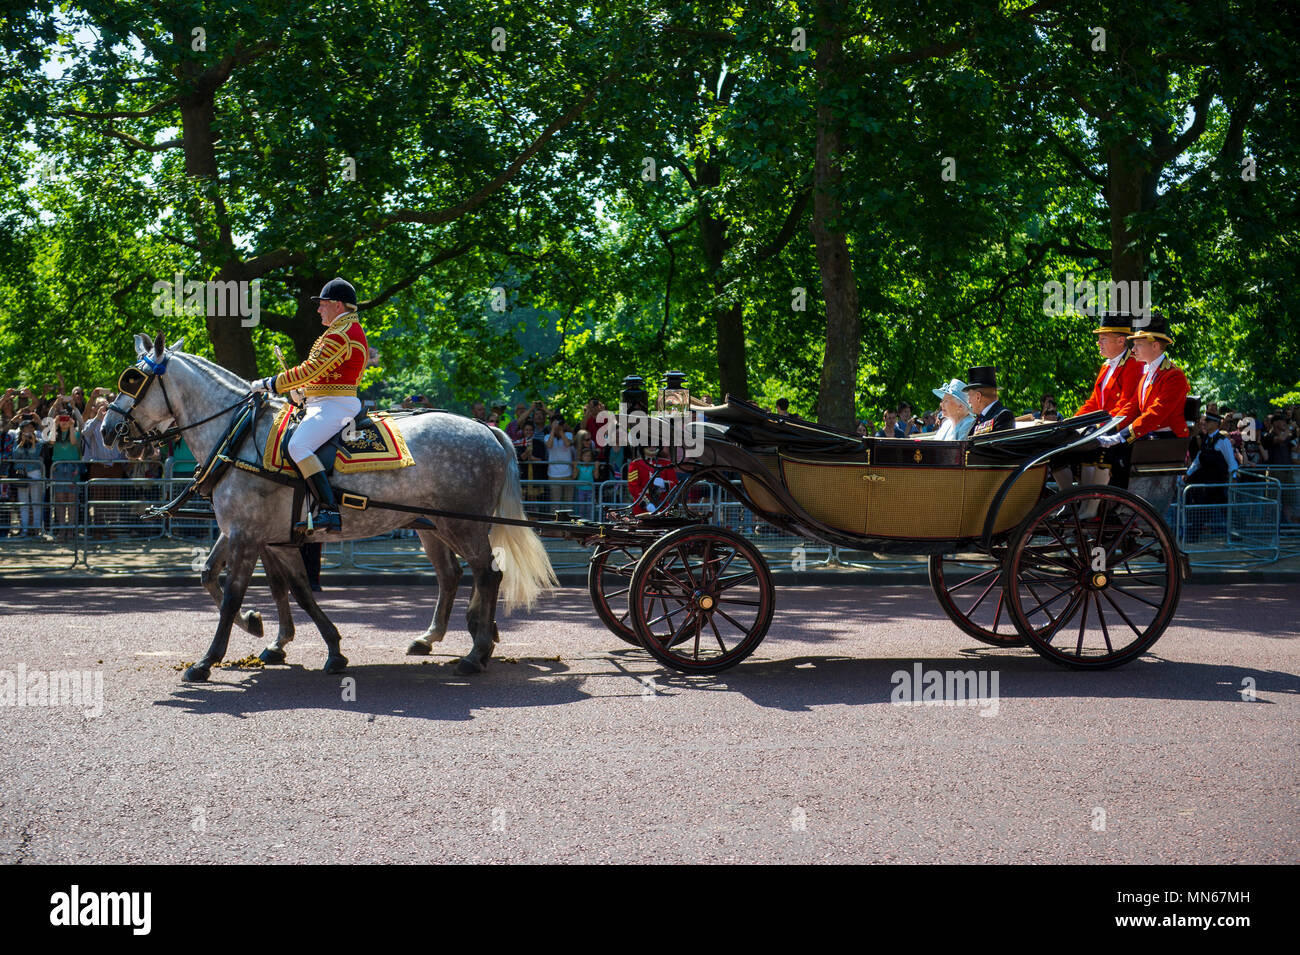 LONDON, UK - JUNE 17, 2017: Her Majesty Queen Elizabeth II and Duke of Edinburgh travel by horse drawn carriage during the Trooping the Colour parade. Stock Photo